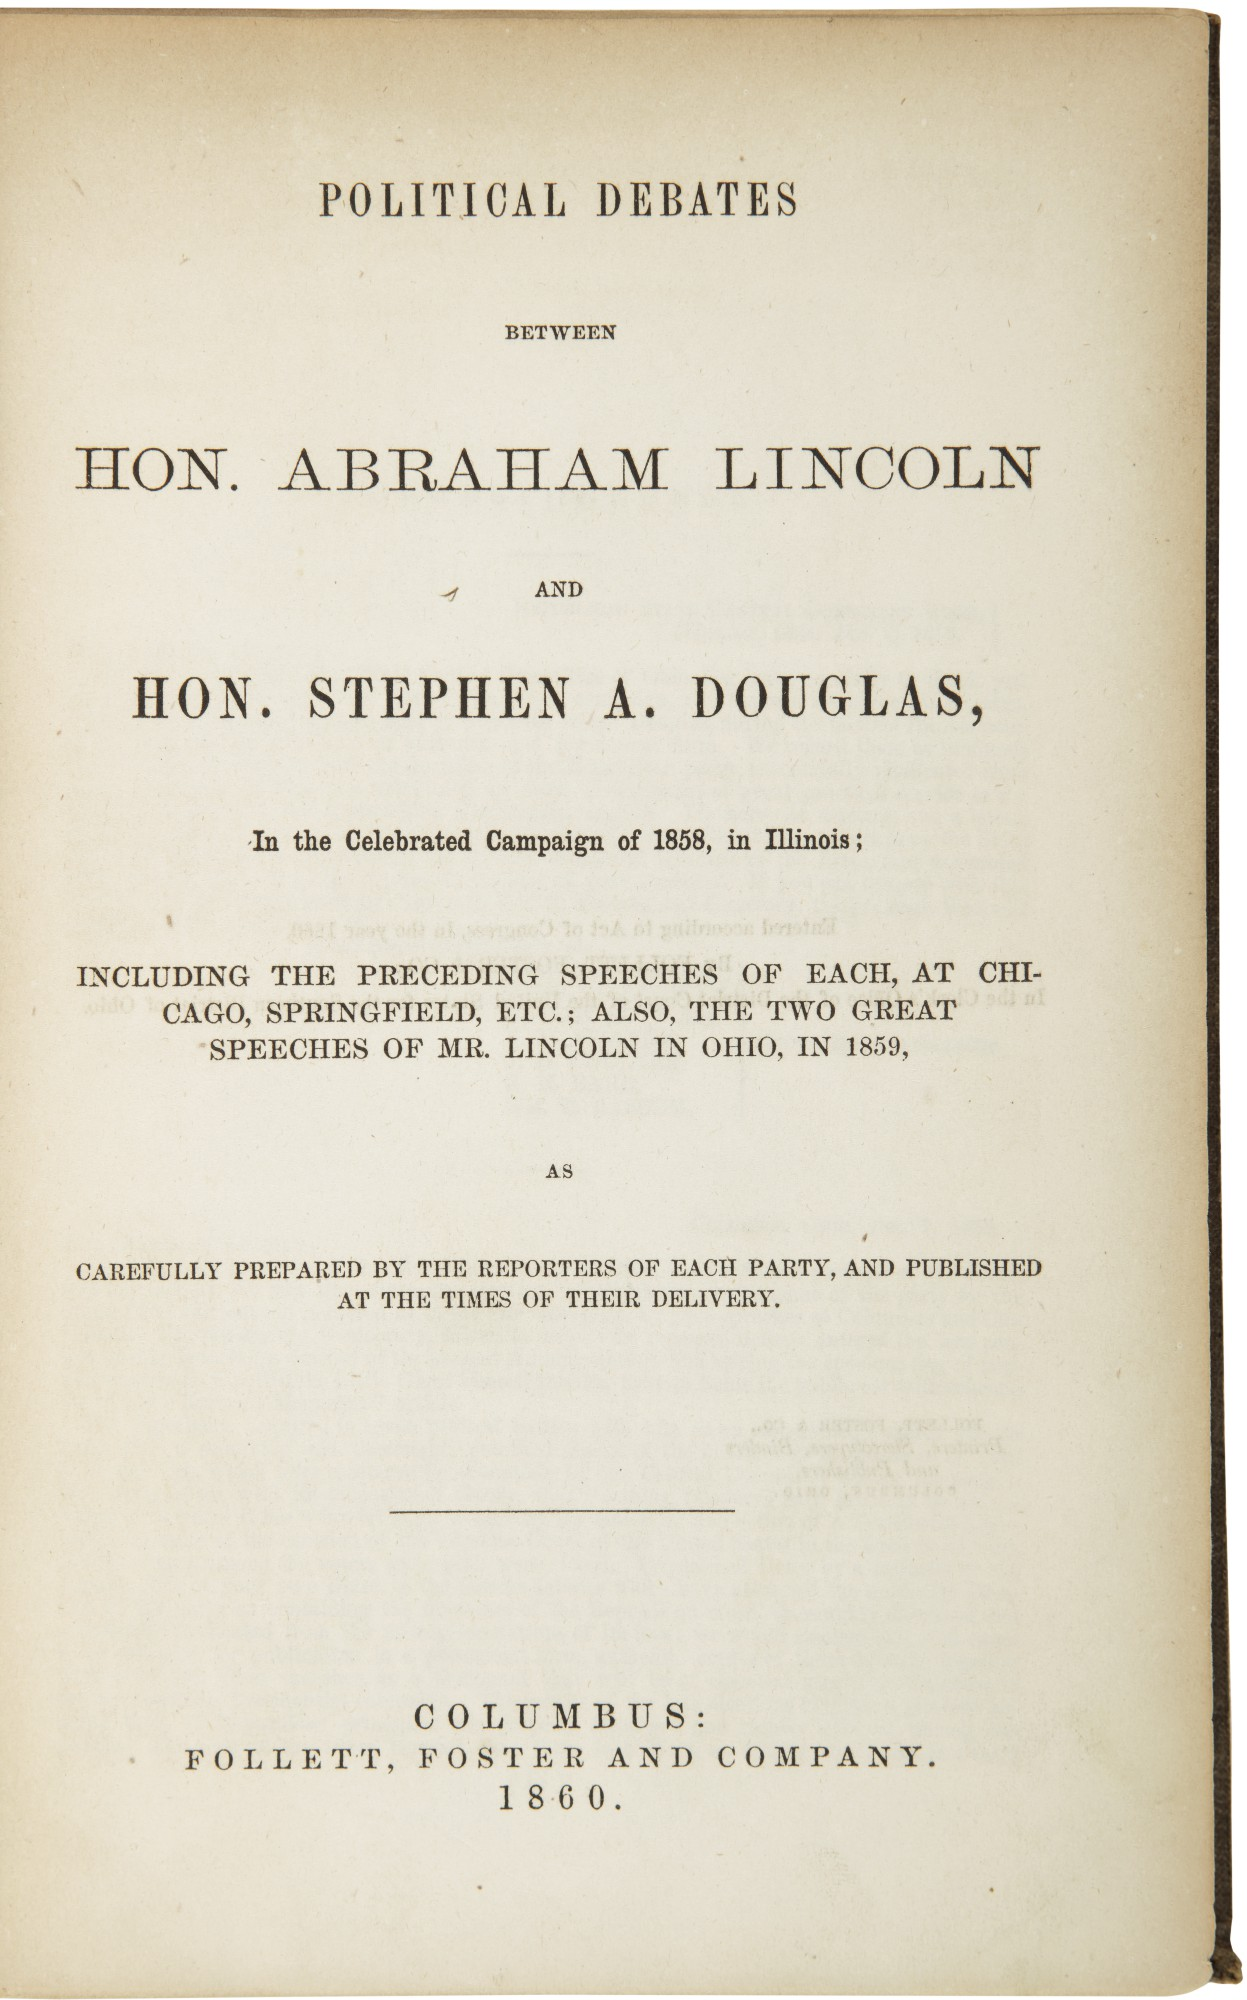 Political debates between Abraham Lincoln and Stephen A. Douglas in the celebrated campaign of 1858 in Illinois